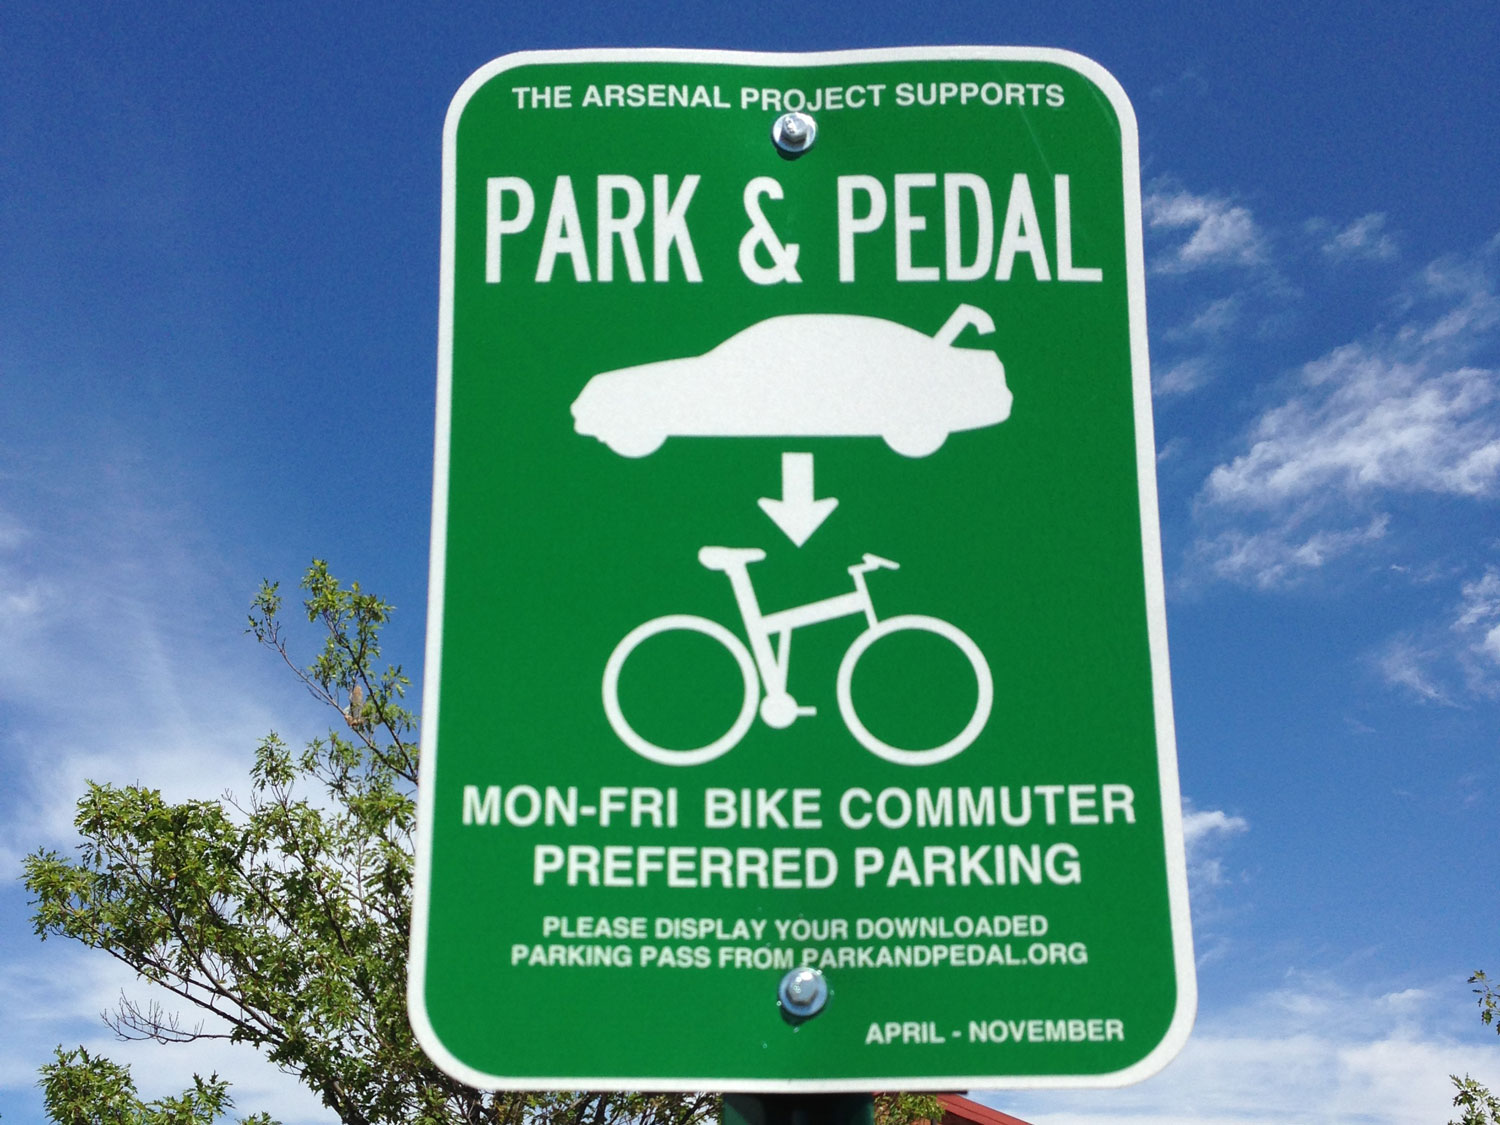 Park&Pedal at Arsenal Mall